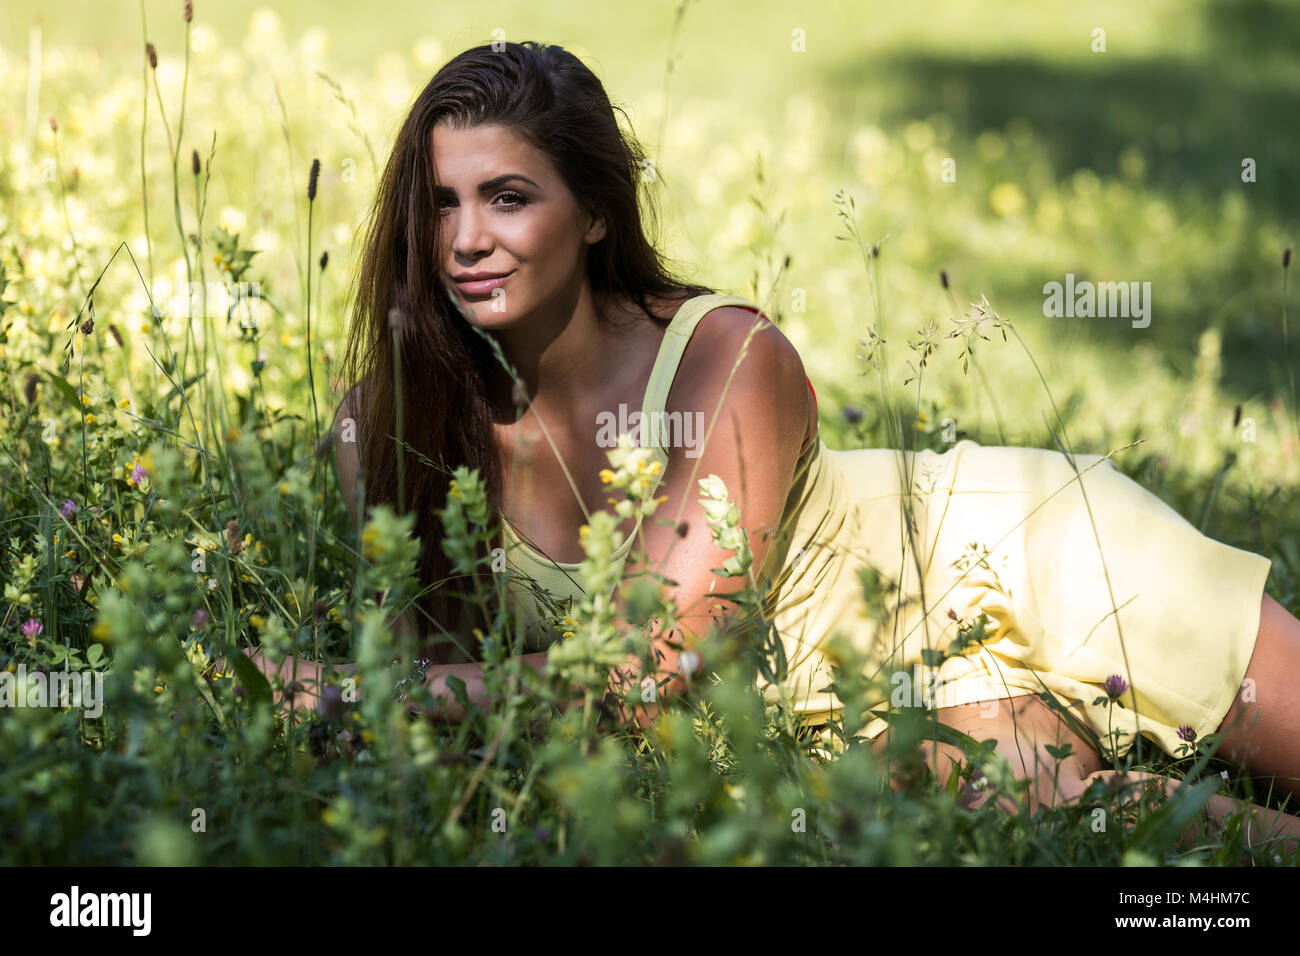 [Image: young-woman-in-summer-dress-is-lying-on-...M4HM7C.jpg]